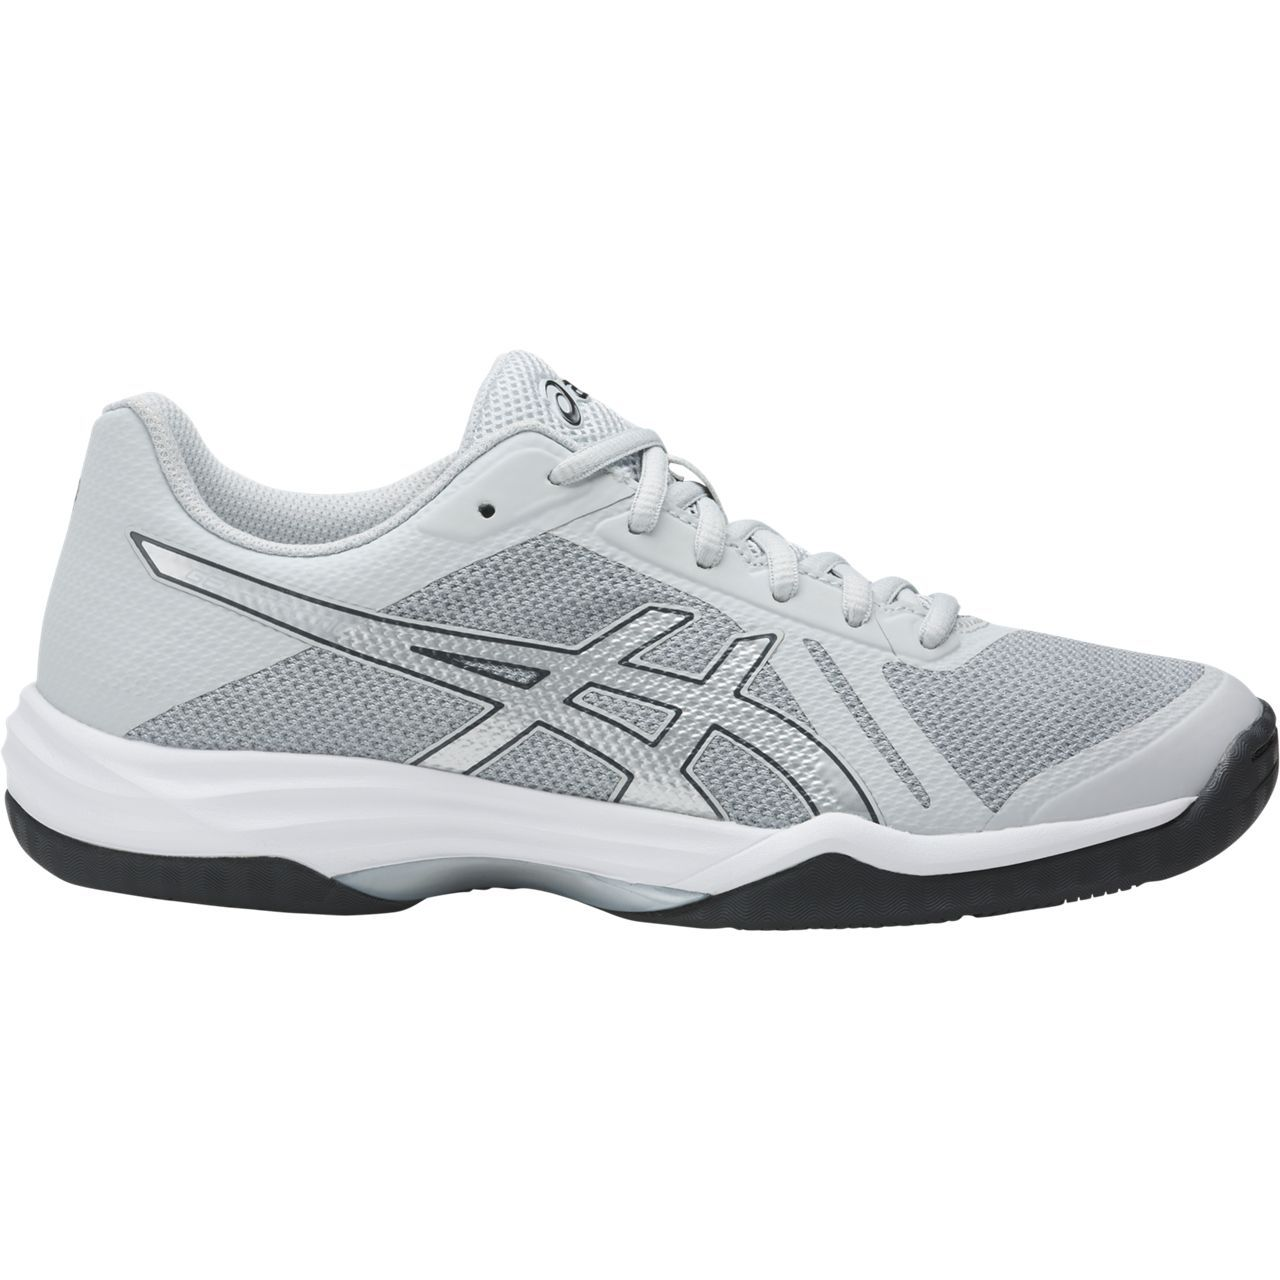 Women's Asics Gel-Tactic 2 Volleyball Shoe in Glacier Grey/Silver/Dark Grey